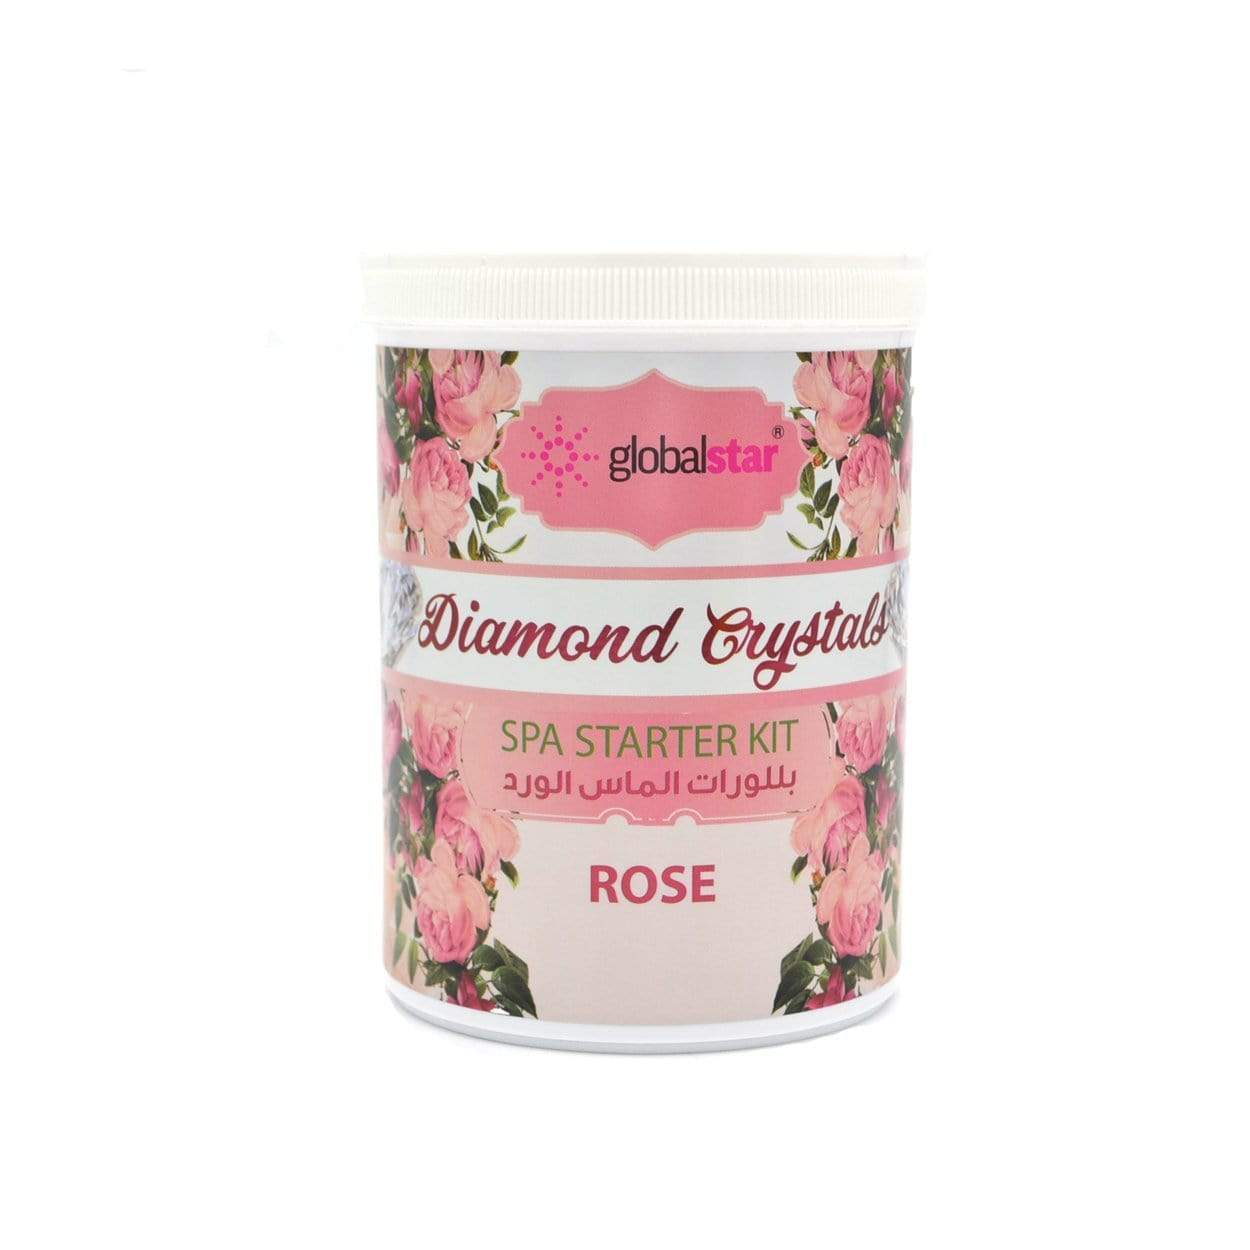 Globalstar Diamond Crystal Spa Starter Kit Rose 1kg